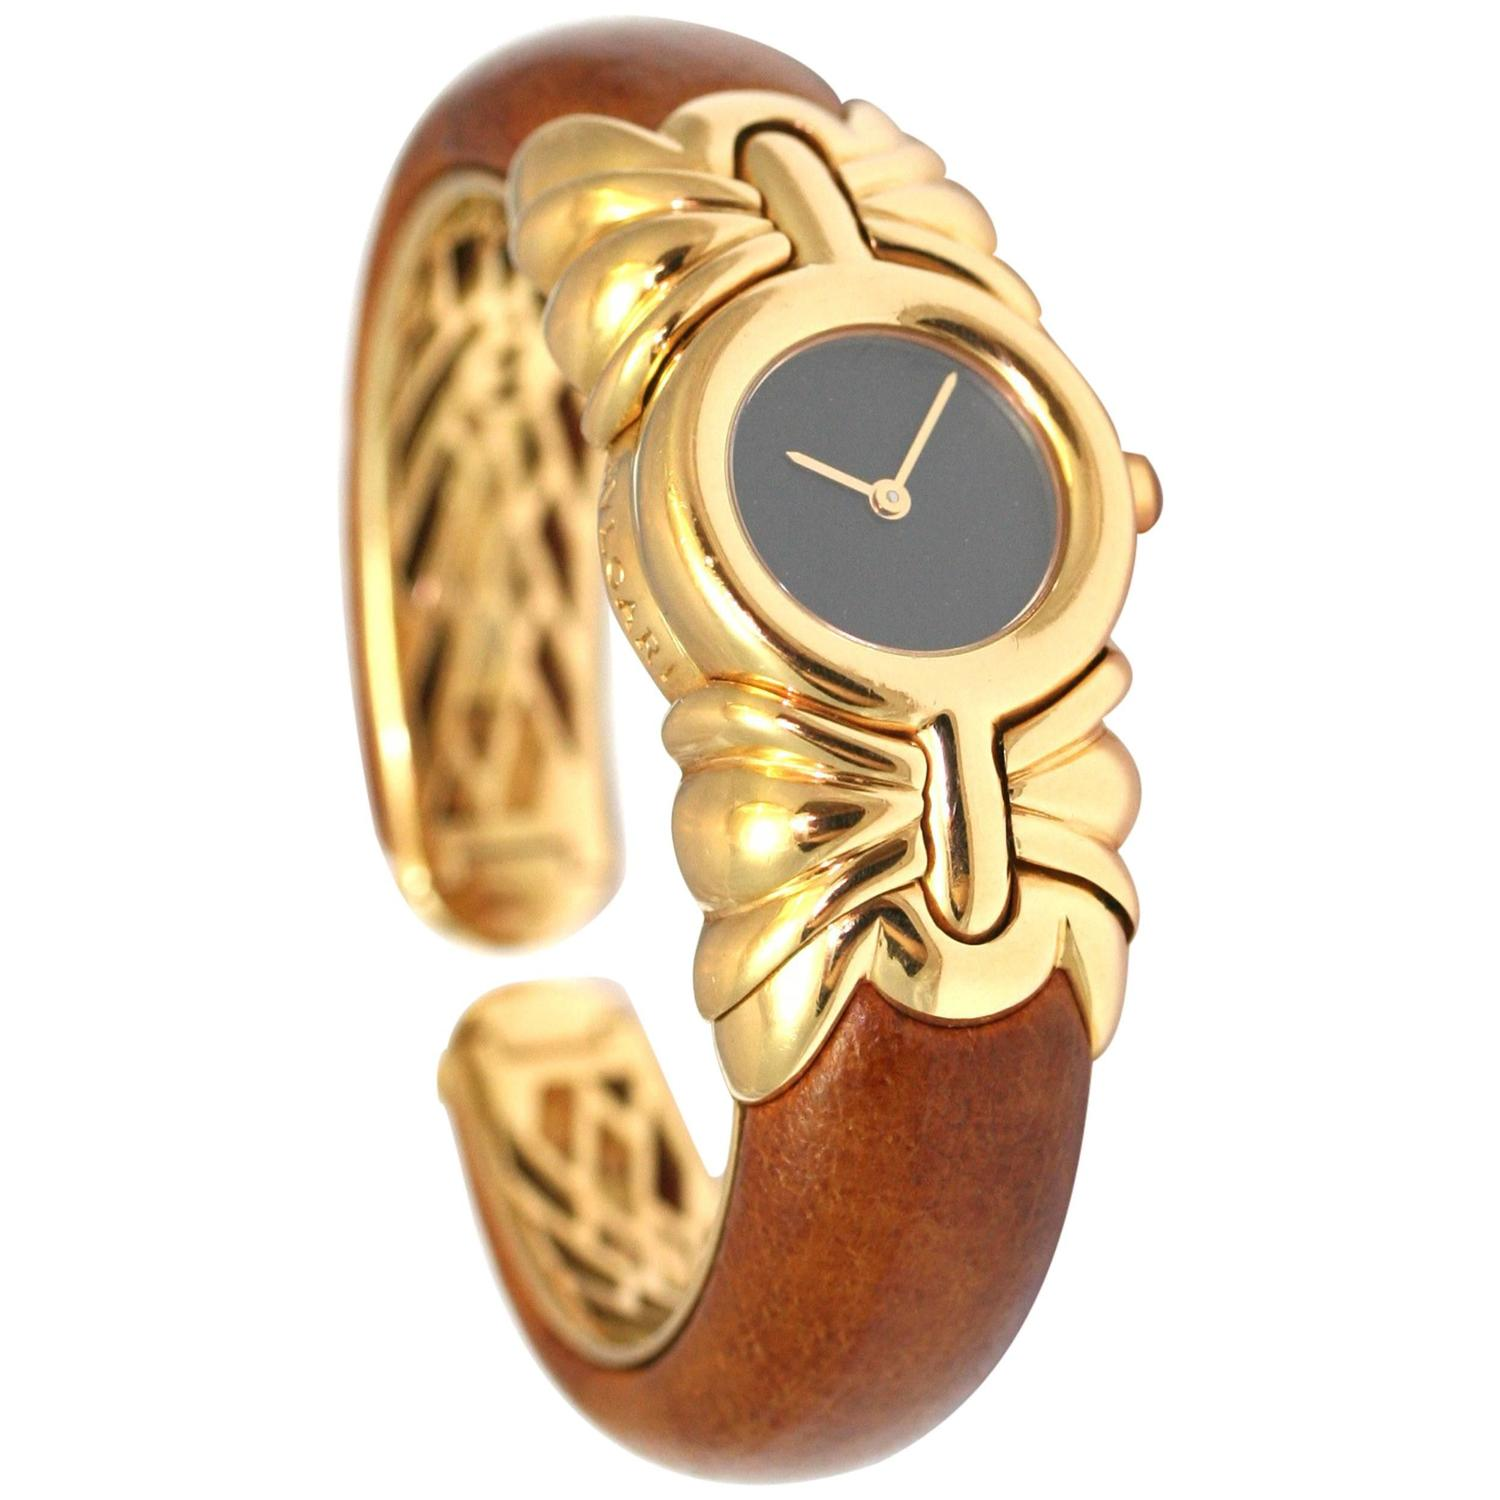 Yafa signed jewels new york ny 1stdibs page 4 - Bulgari Ladies Yellow Gold Wood Antalya Wristwatch Ref Bj03 C509 For Sale At 1stdibs